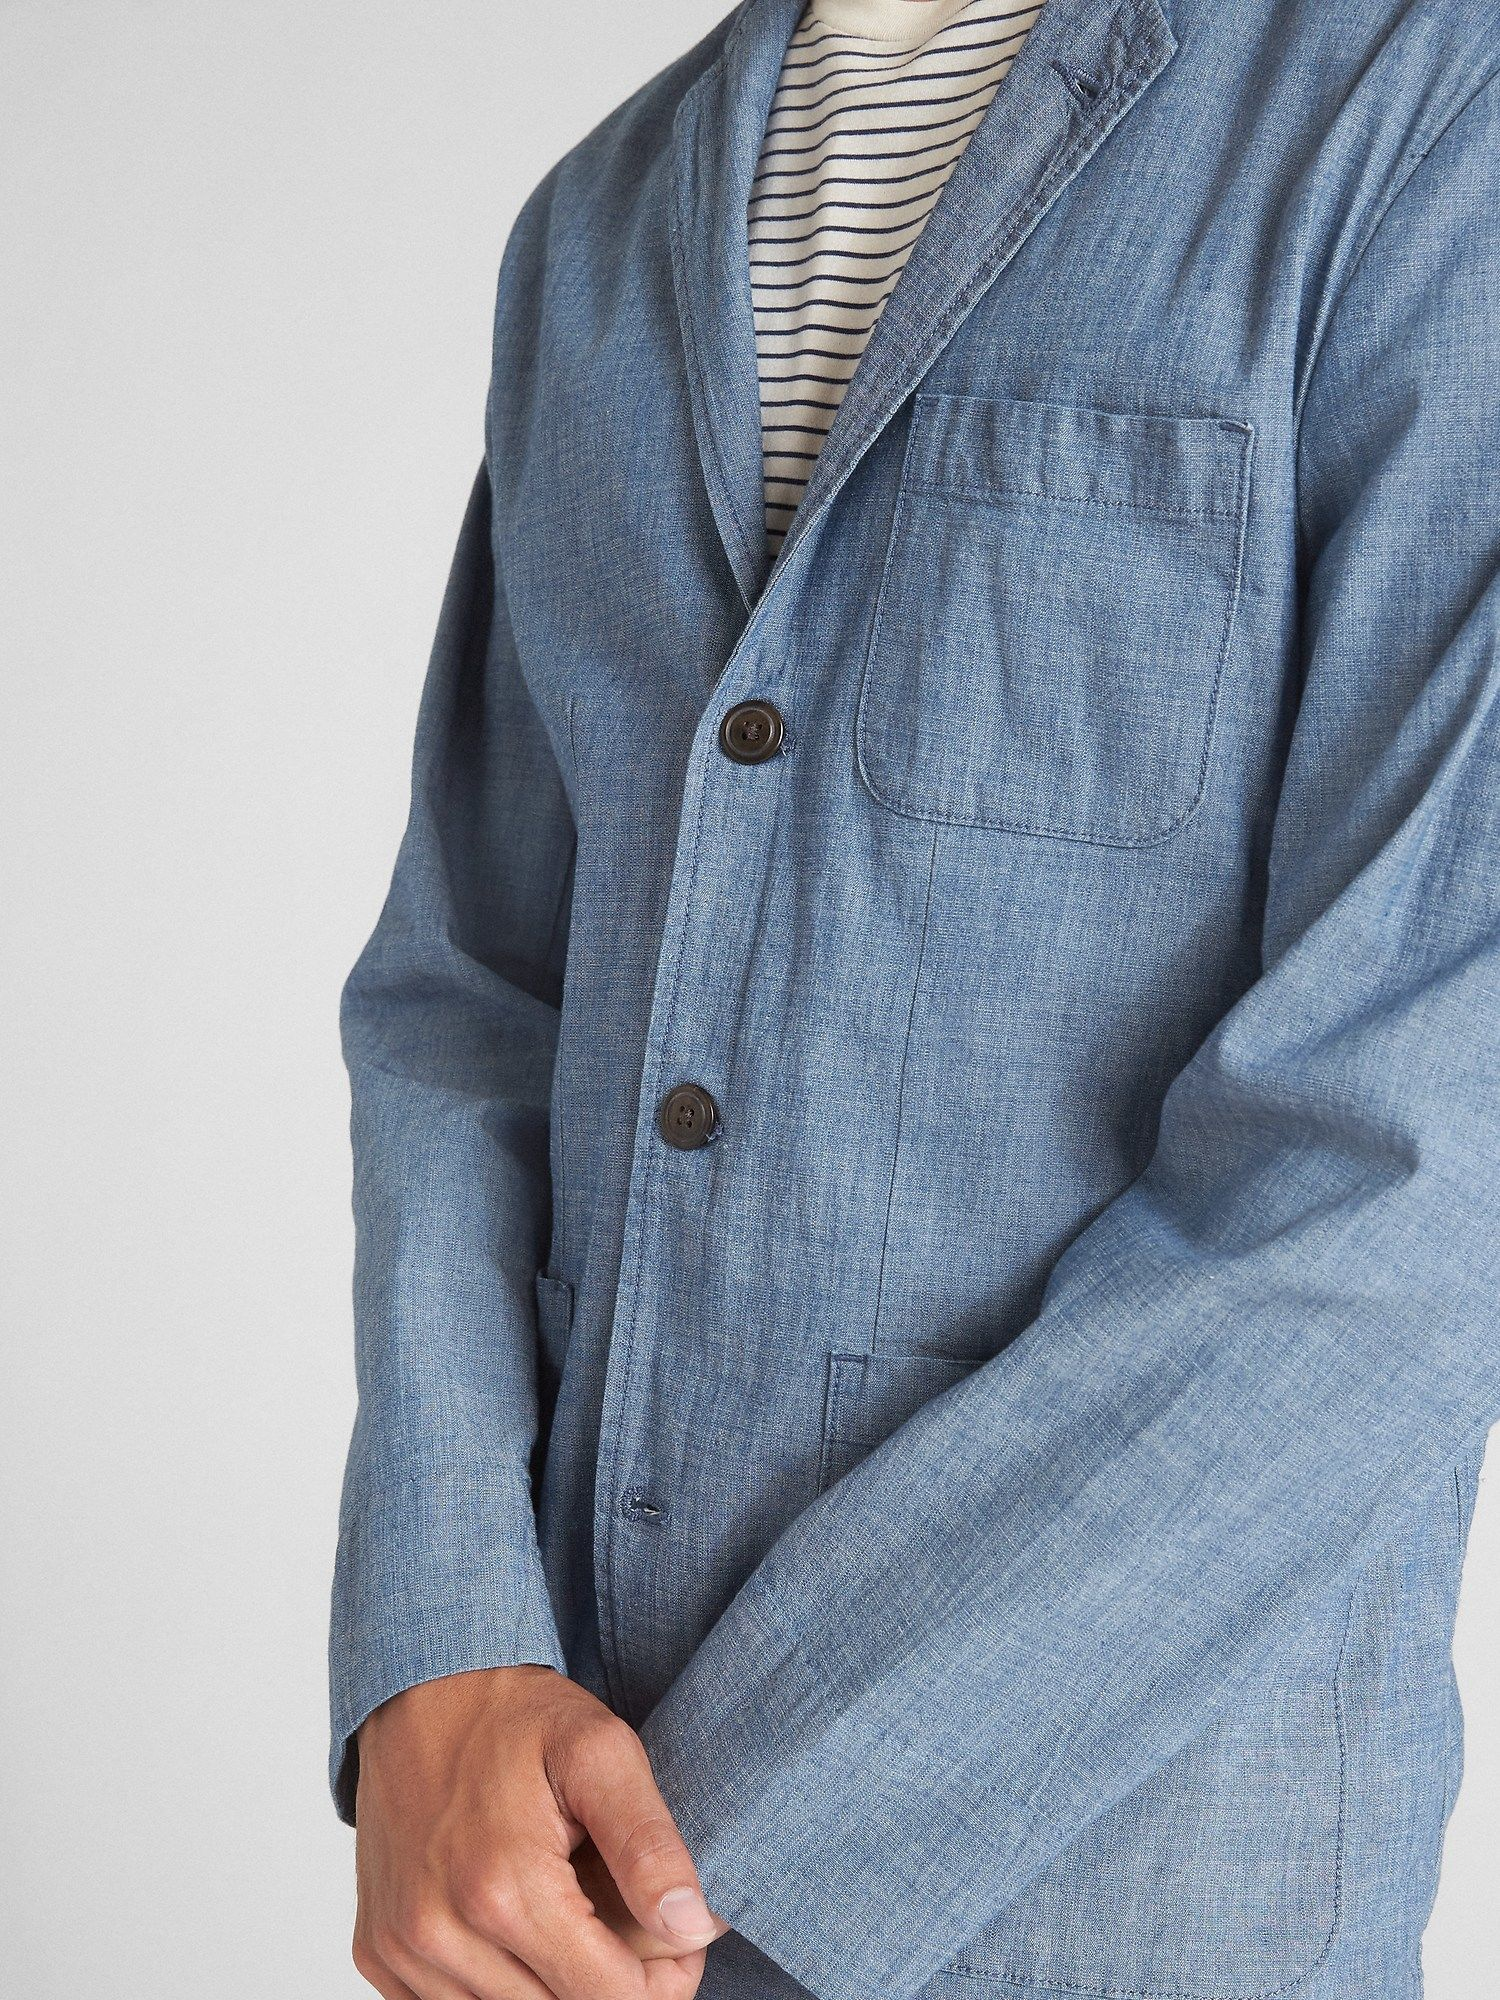 Wearlight Blazer in Chambray with GapFlex